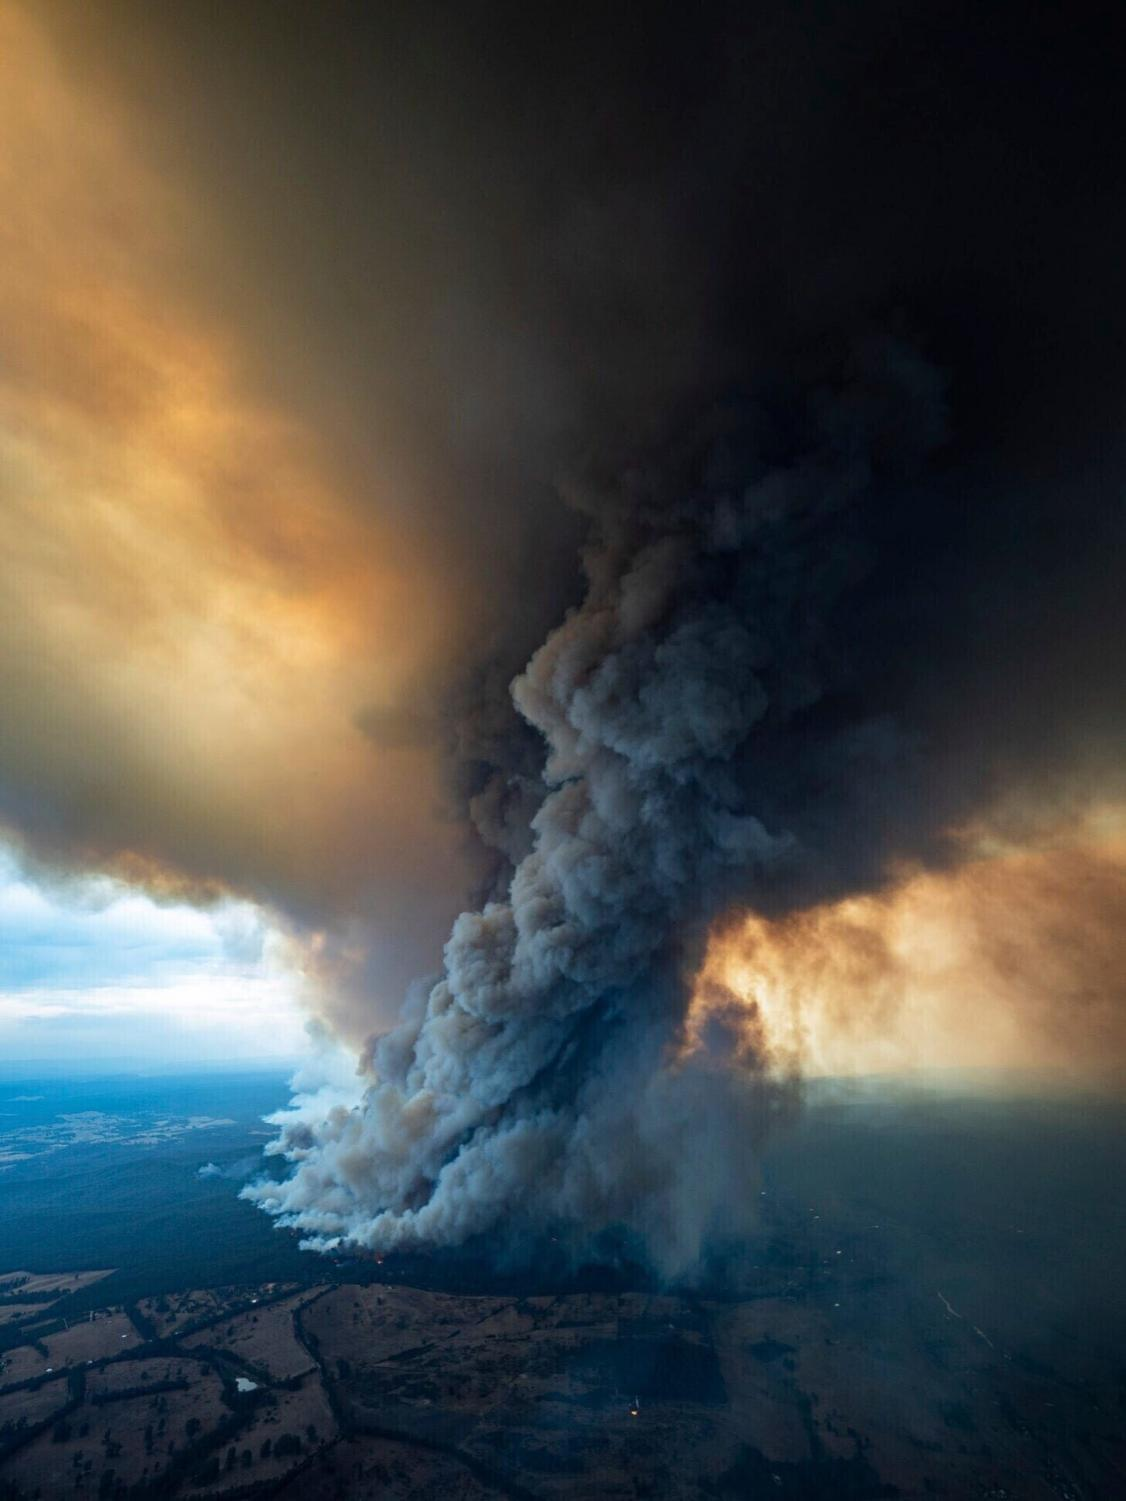 As seen from above, the fires are clearing out large areas of land and creating giant clouds of smoke that end up covering the surrounding land.